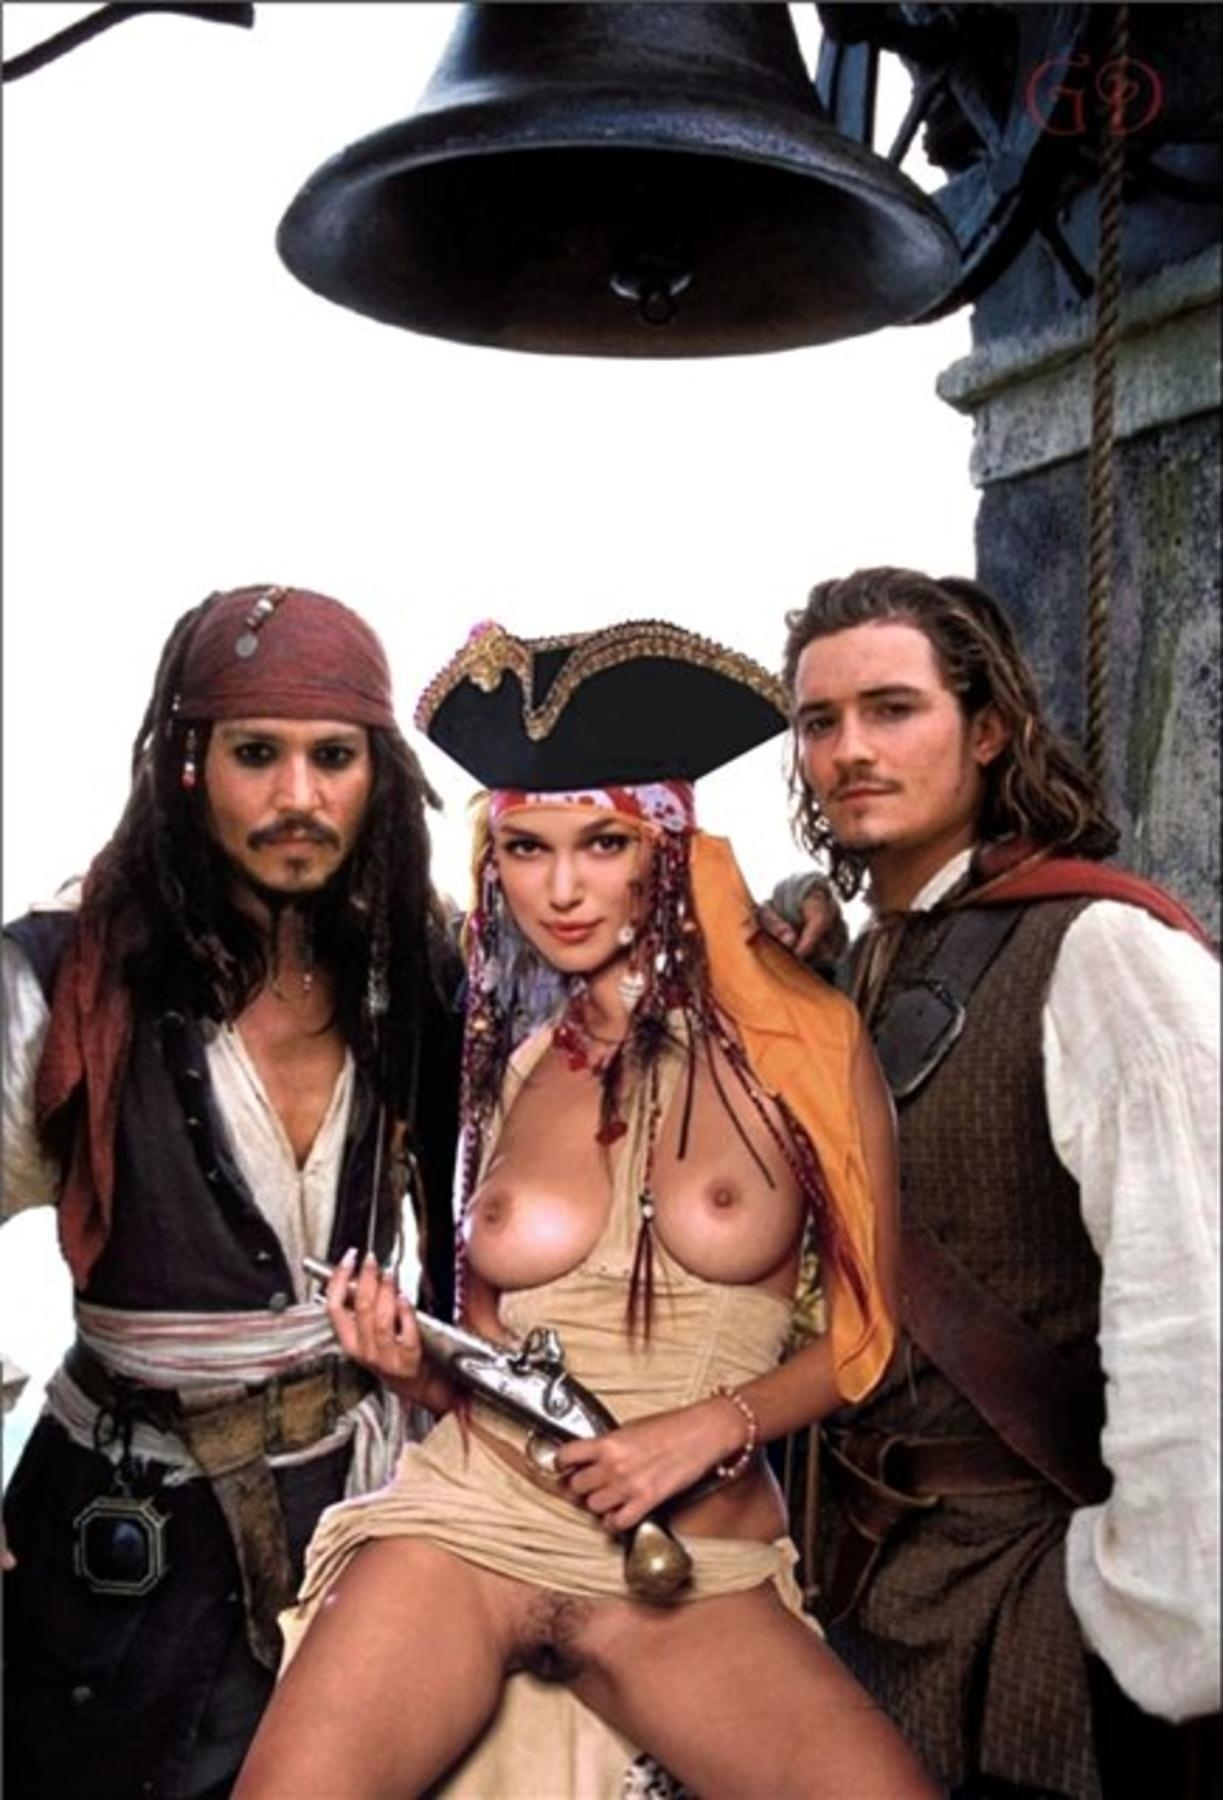 Pirates caribbean nude nude photo